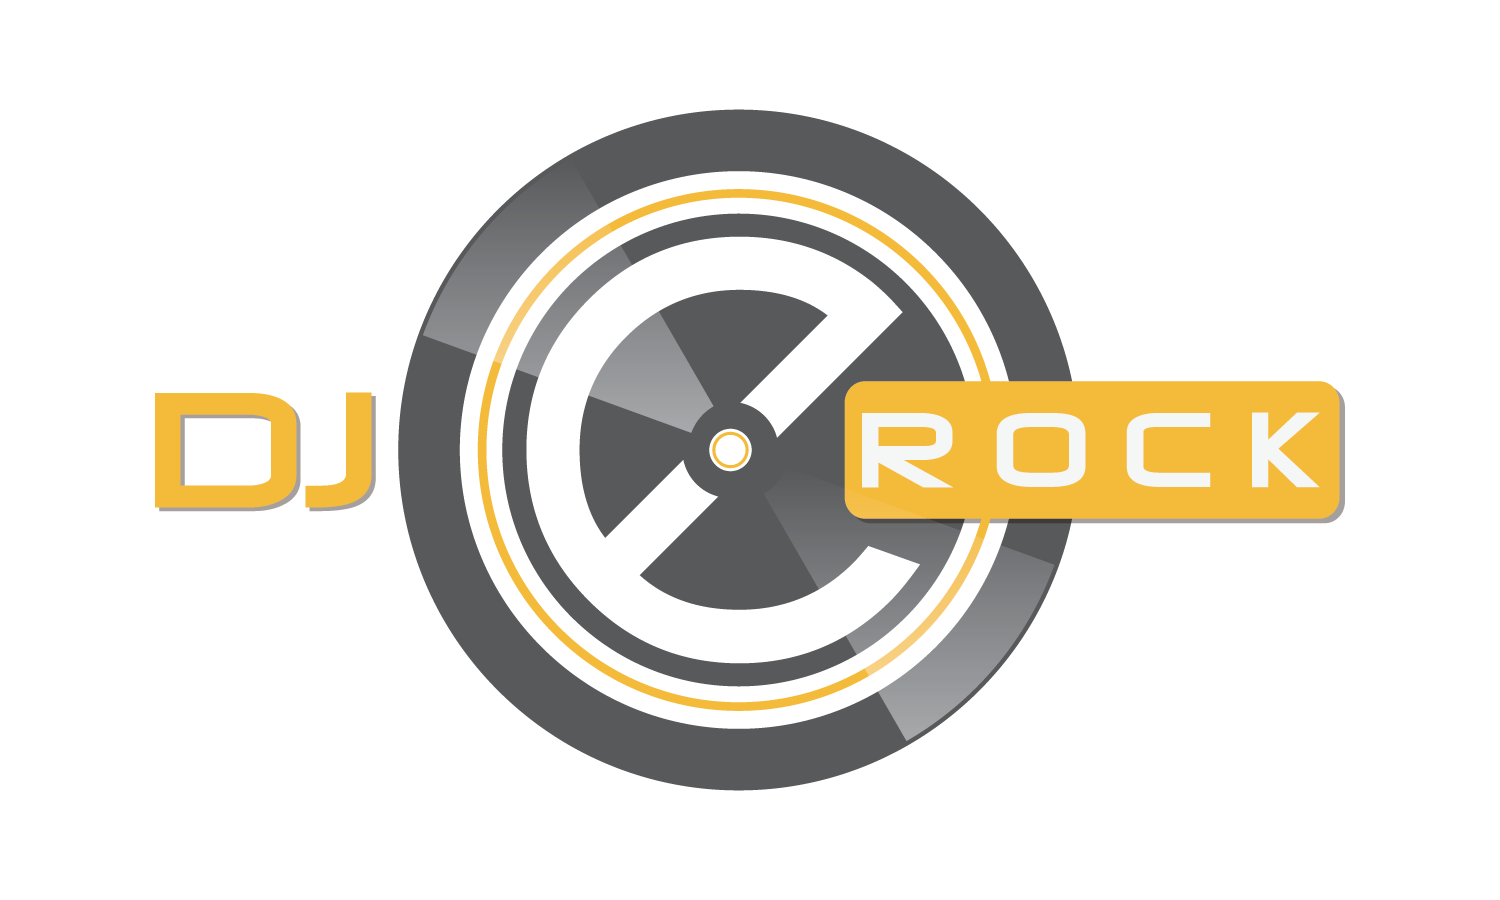 DJErock Productions